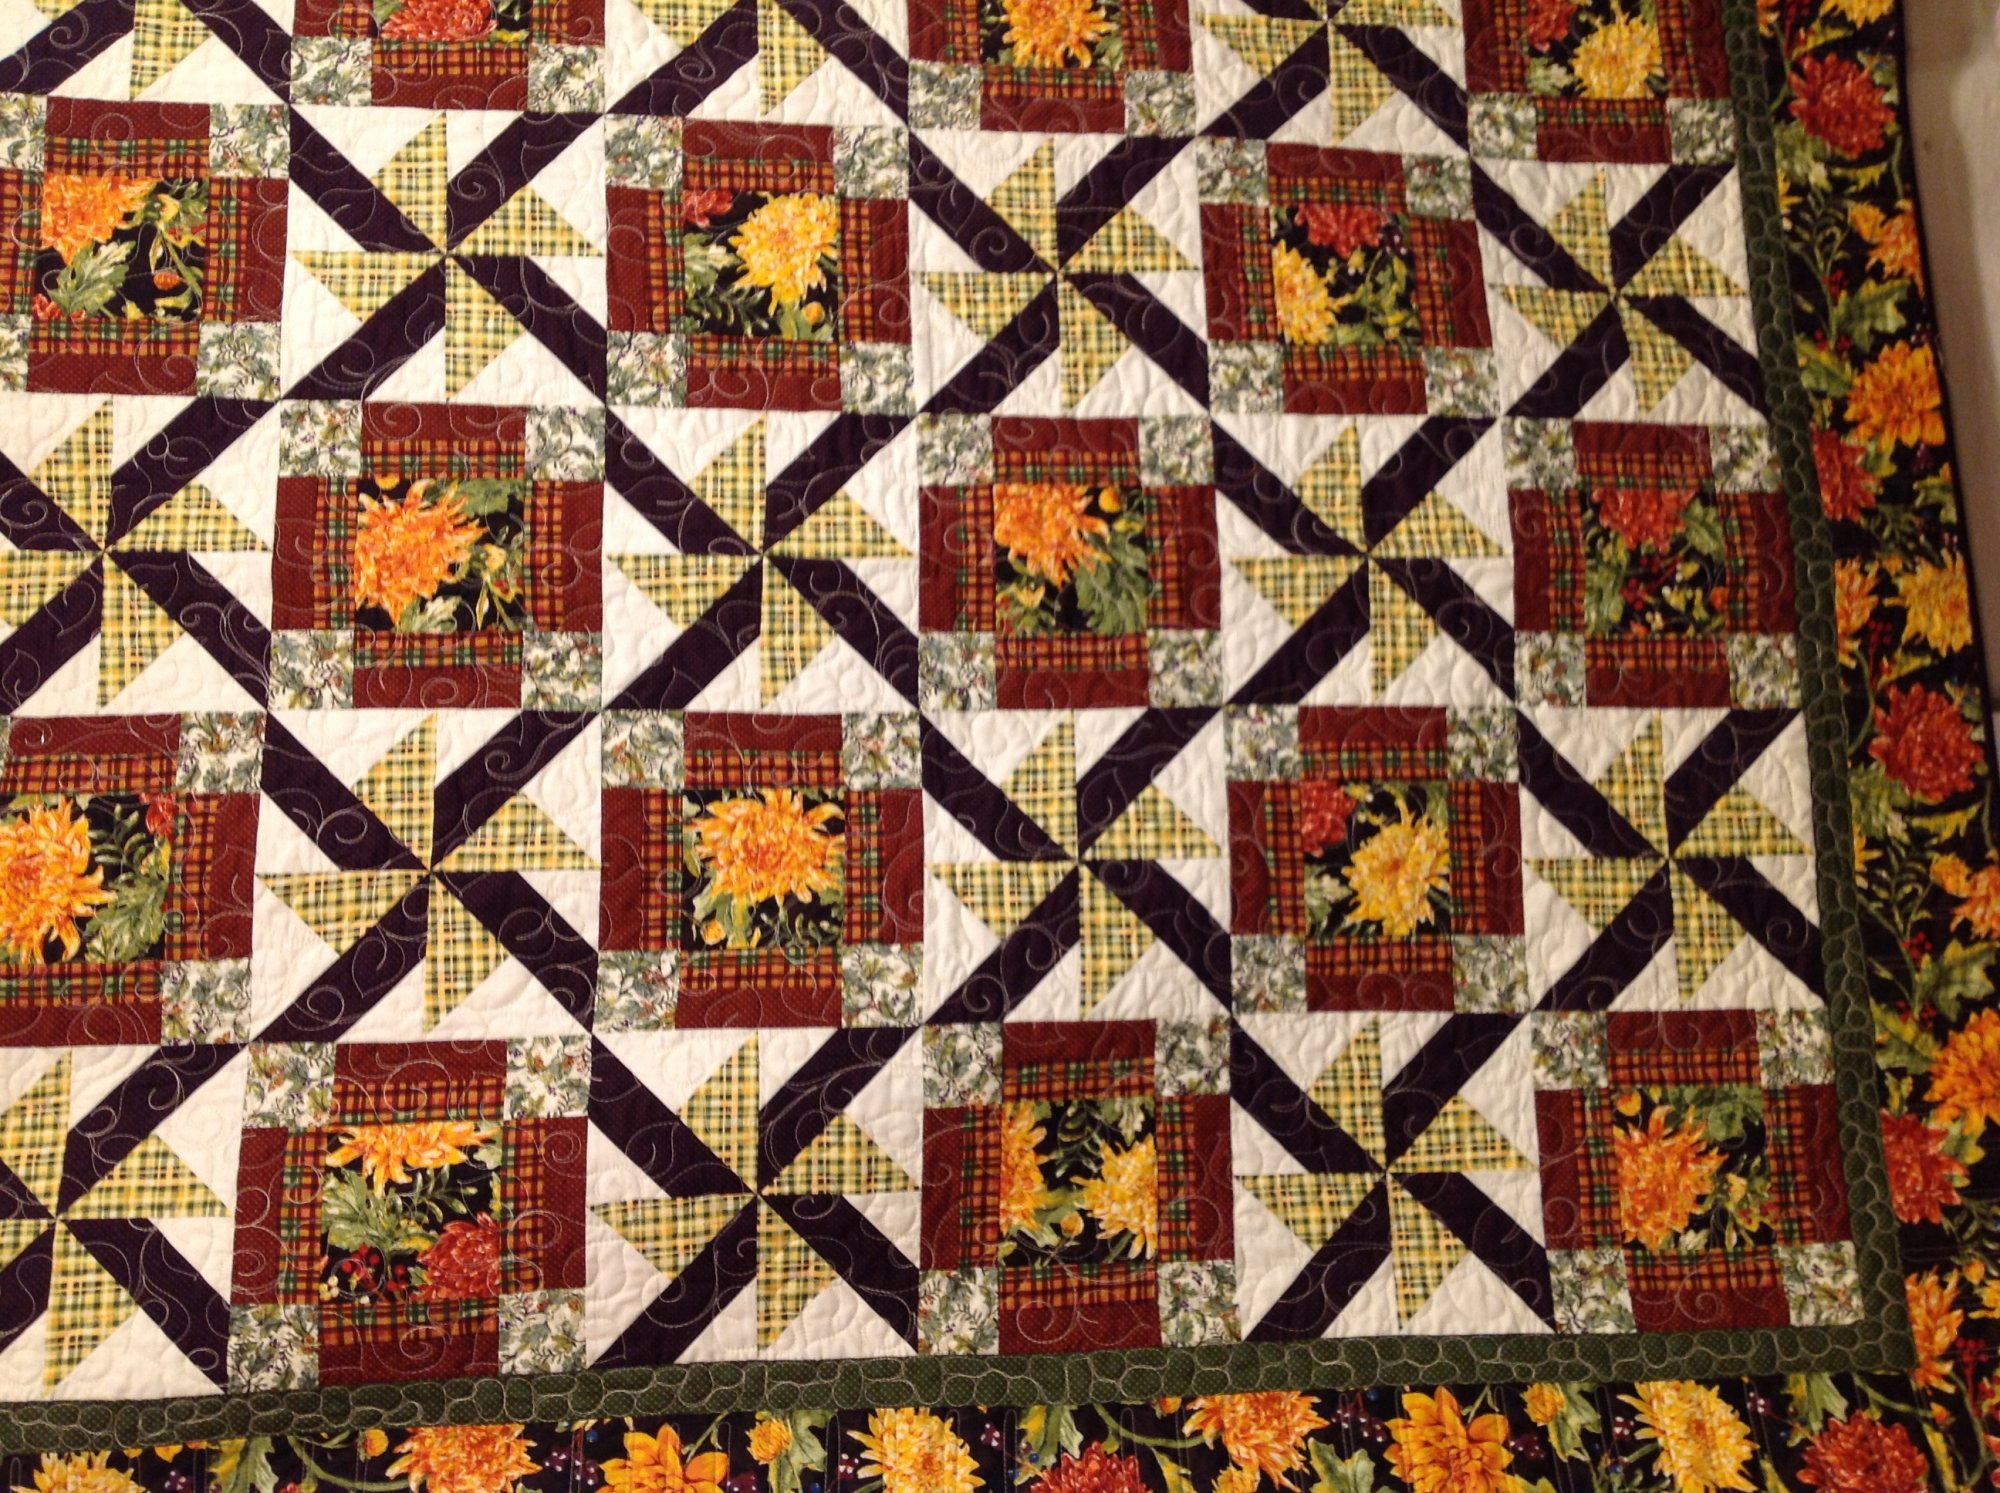 Designed By Roxanne Carter, This 2015 Quilt Uses All Eight